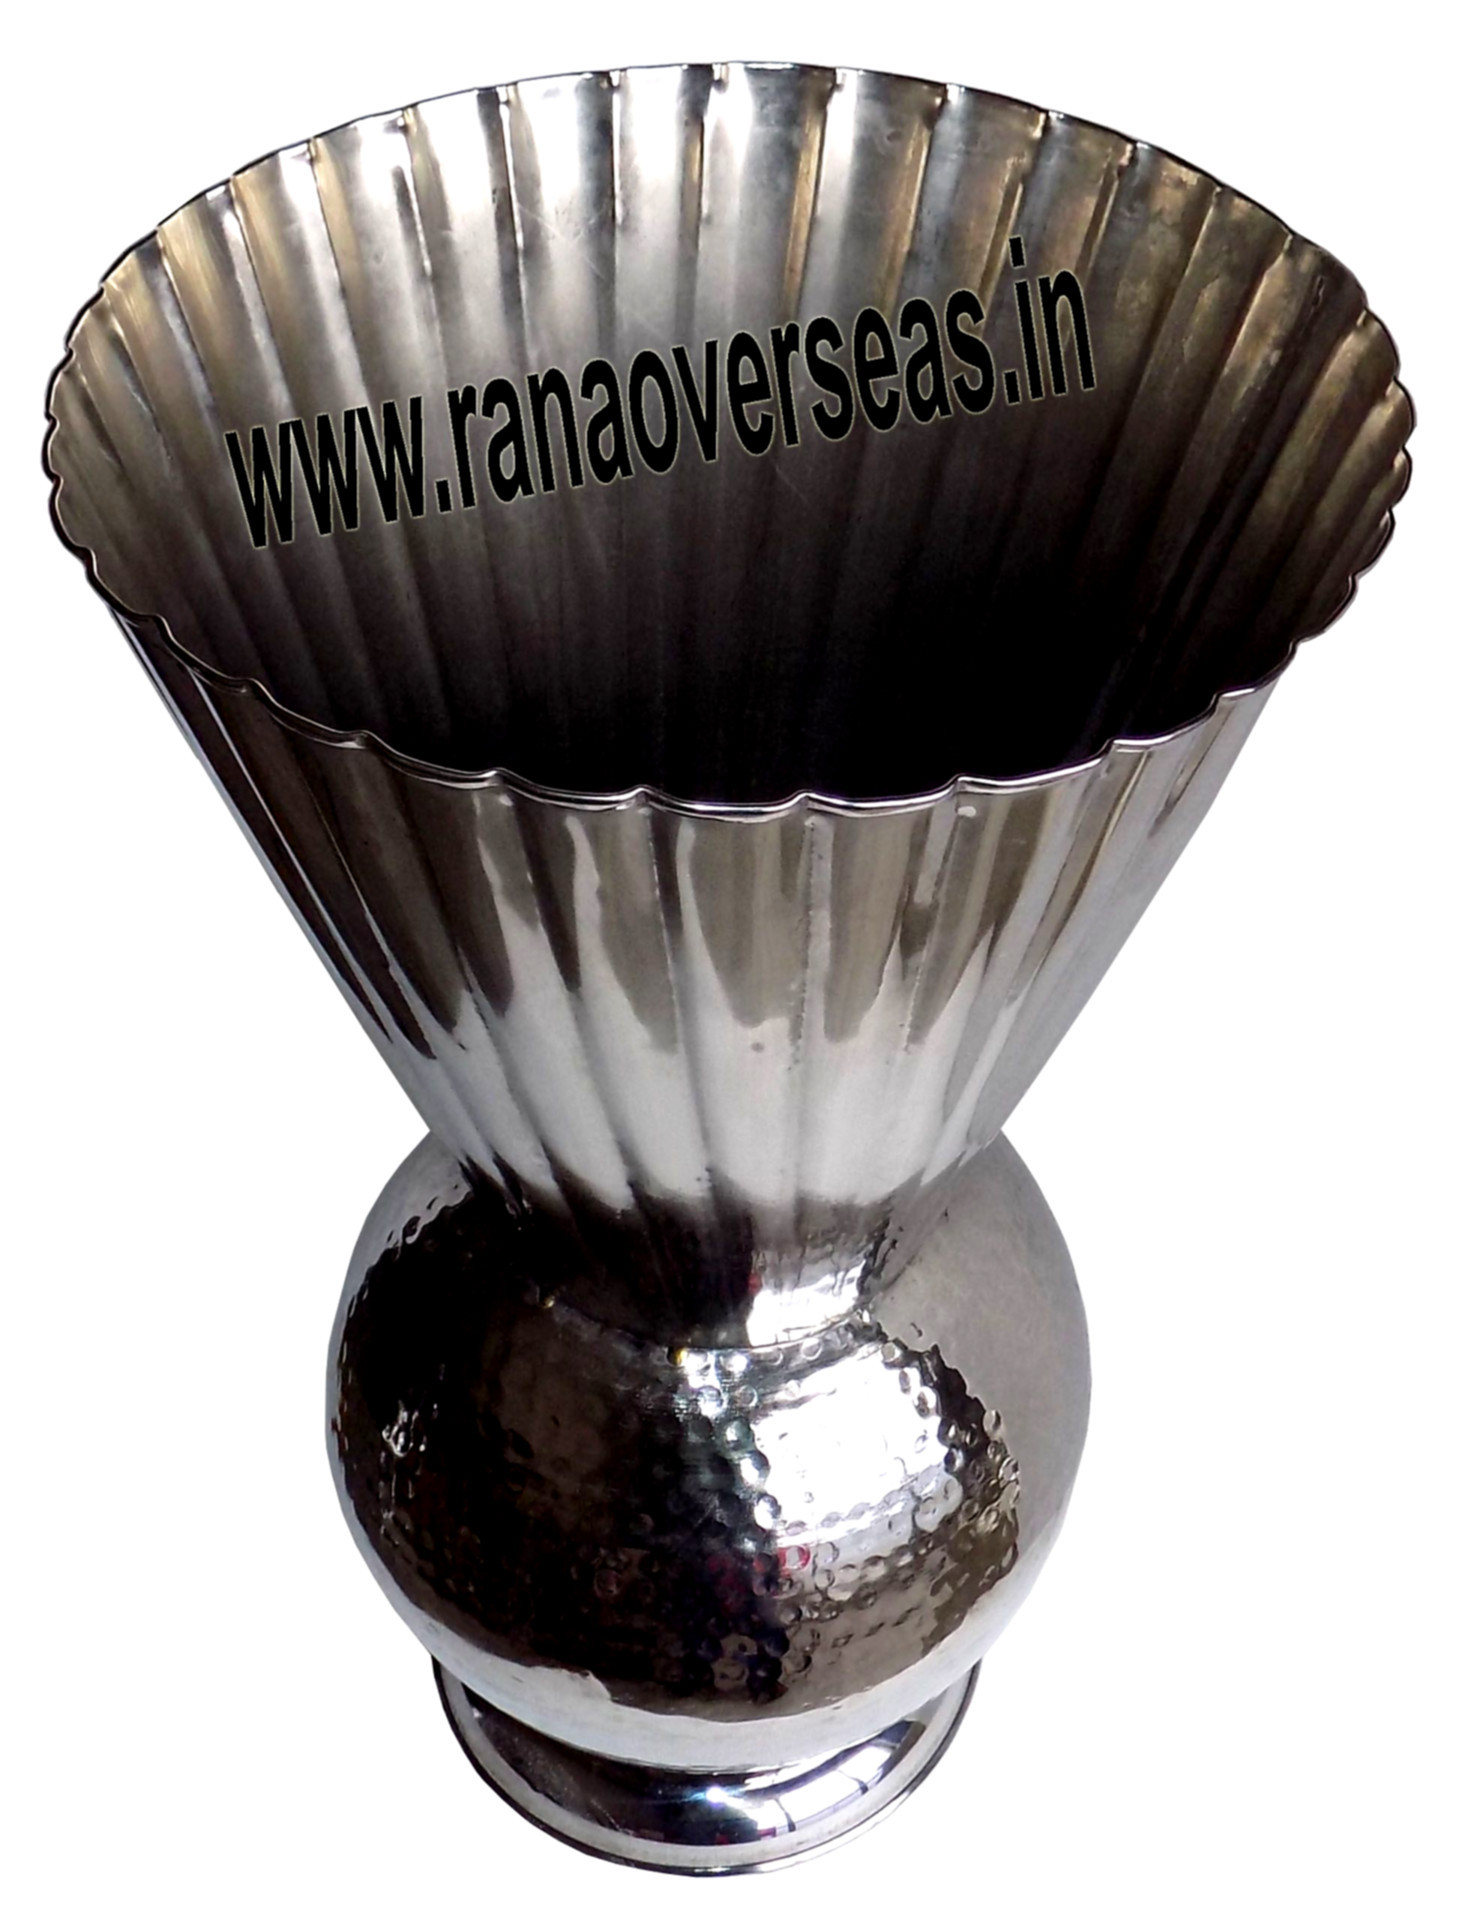 wide mouth vase of 32 metal flowers for vase rituals you should know in 32 metal throughout aluminium metal flower vase 10388 aluminium flower vases designed by